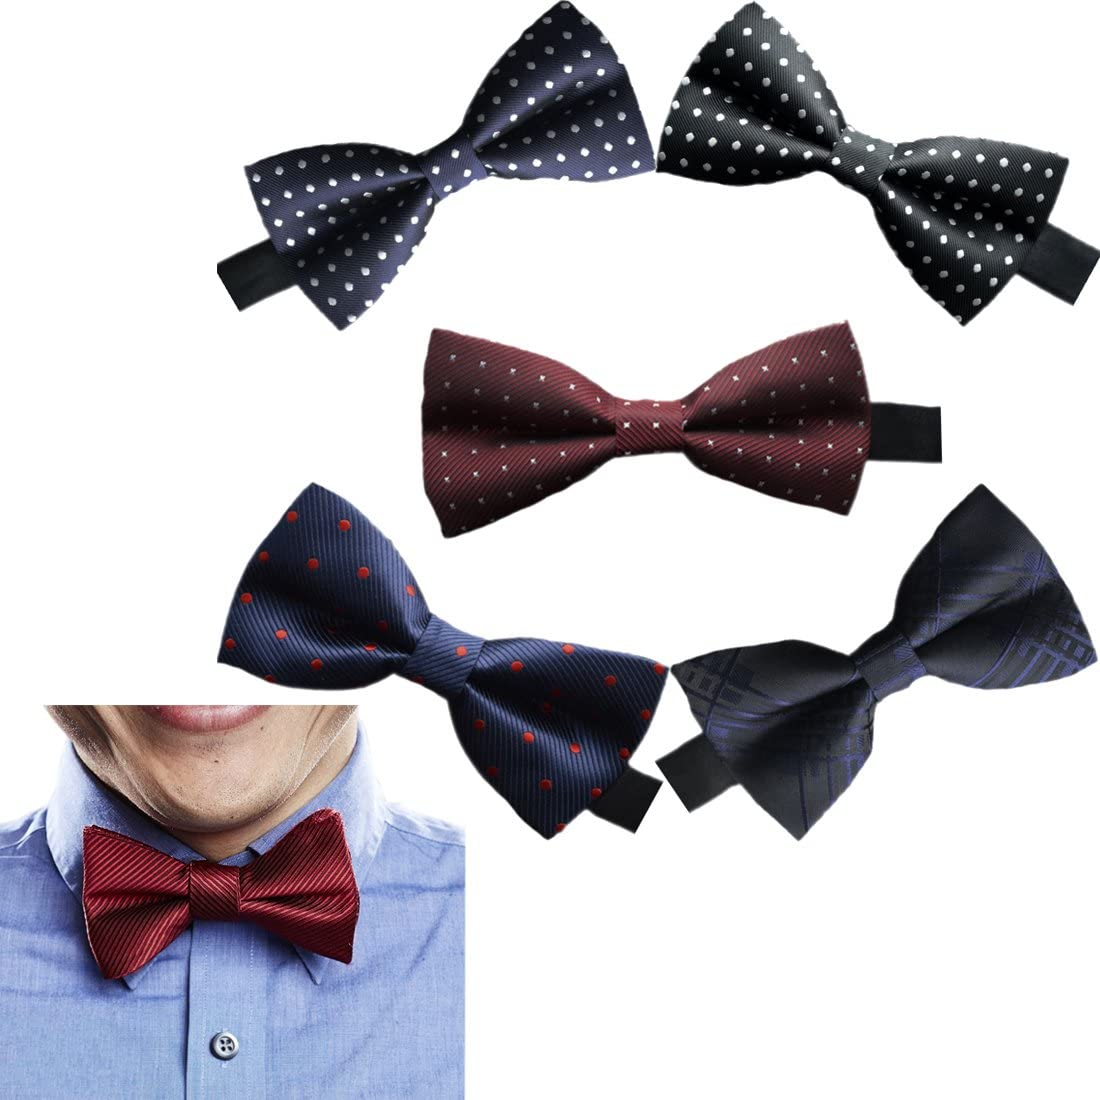 A Sept.Filles Mens Tie Clip On Bow Tie Packs of 5